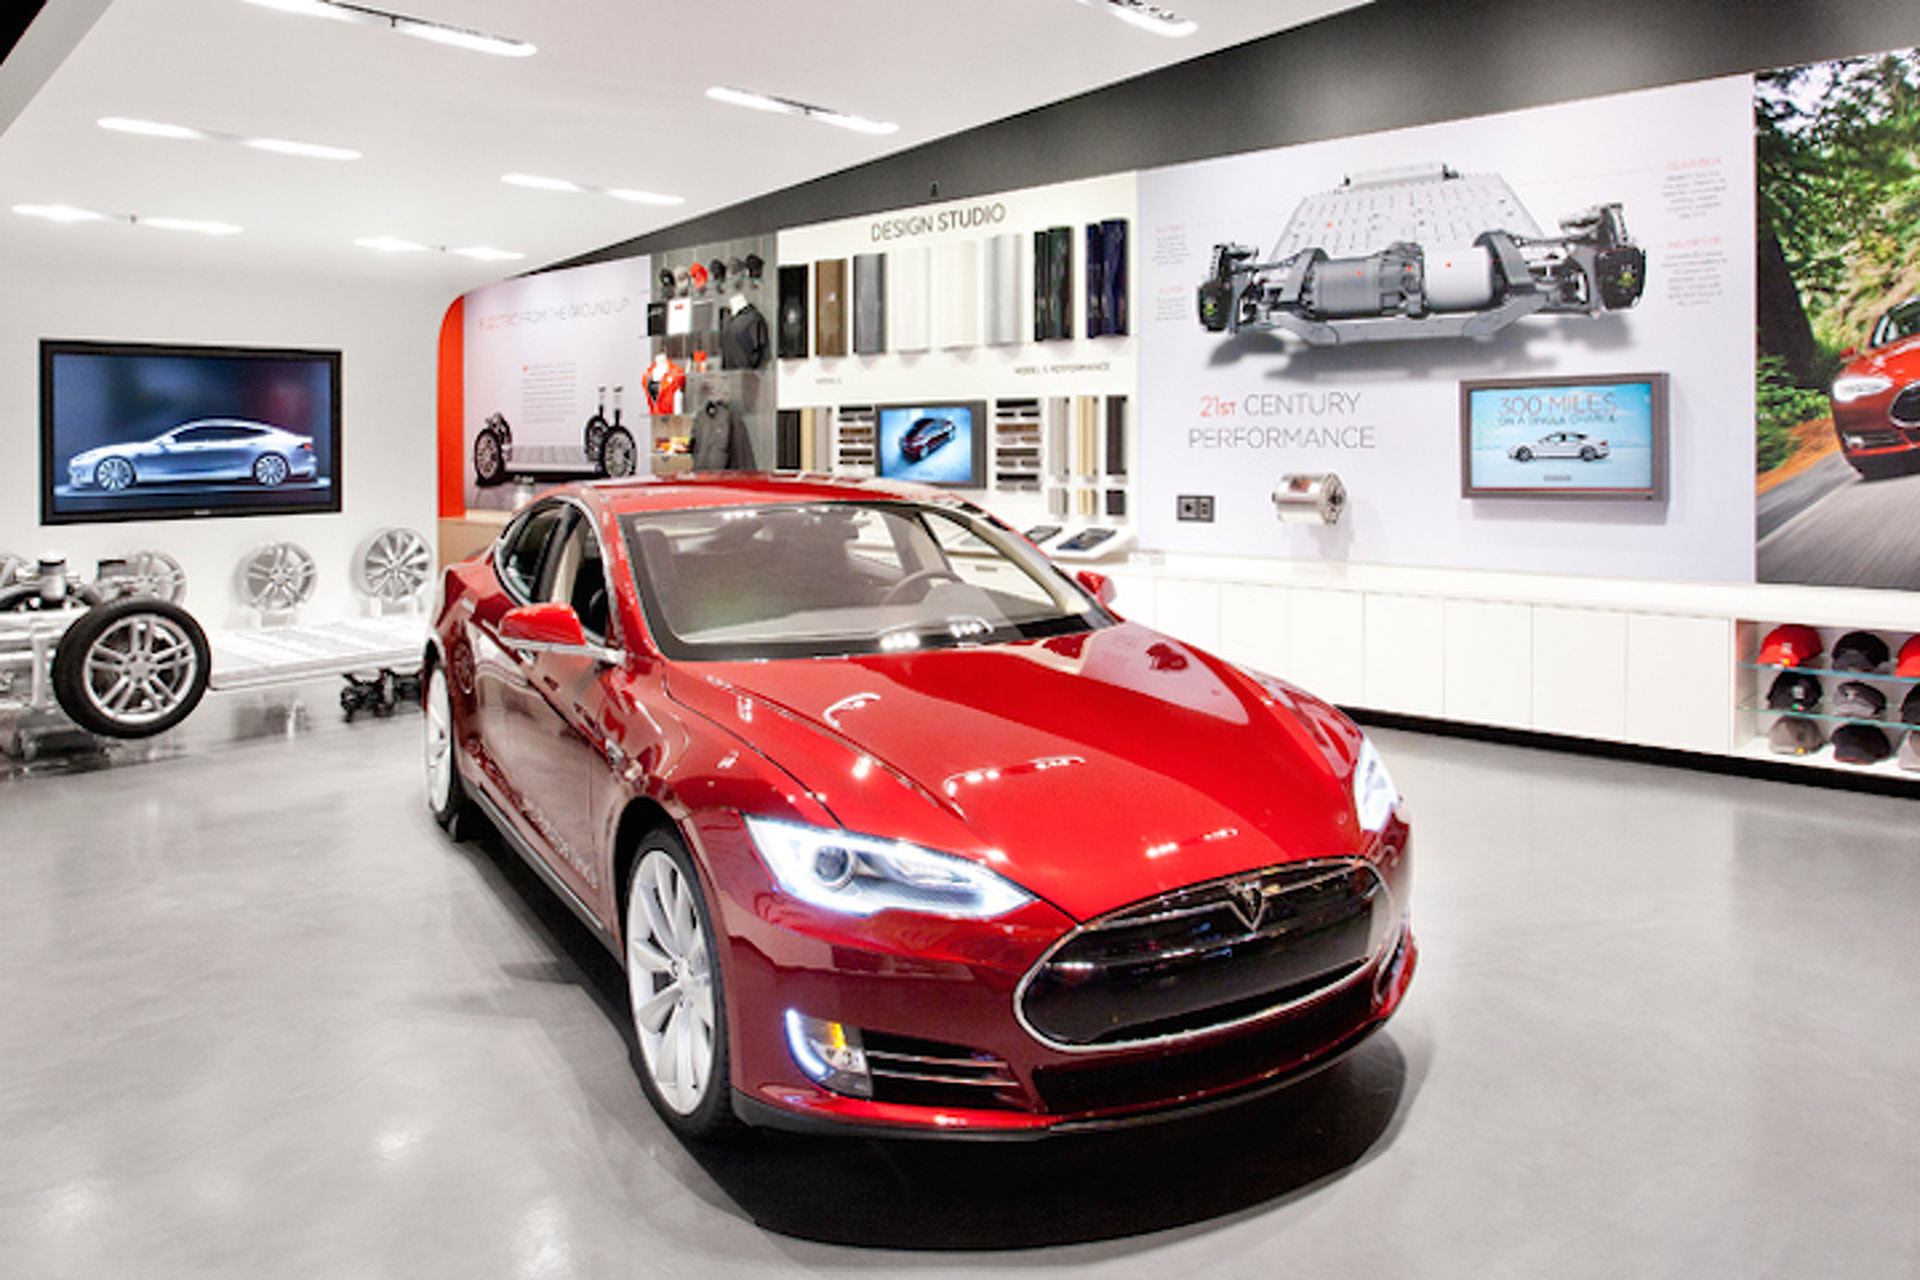 Missouri Looking to Ban Tesla Direct Sales, But Tesla Fights Back